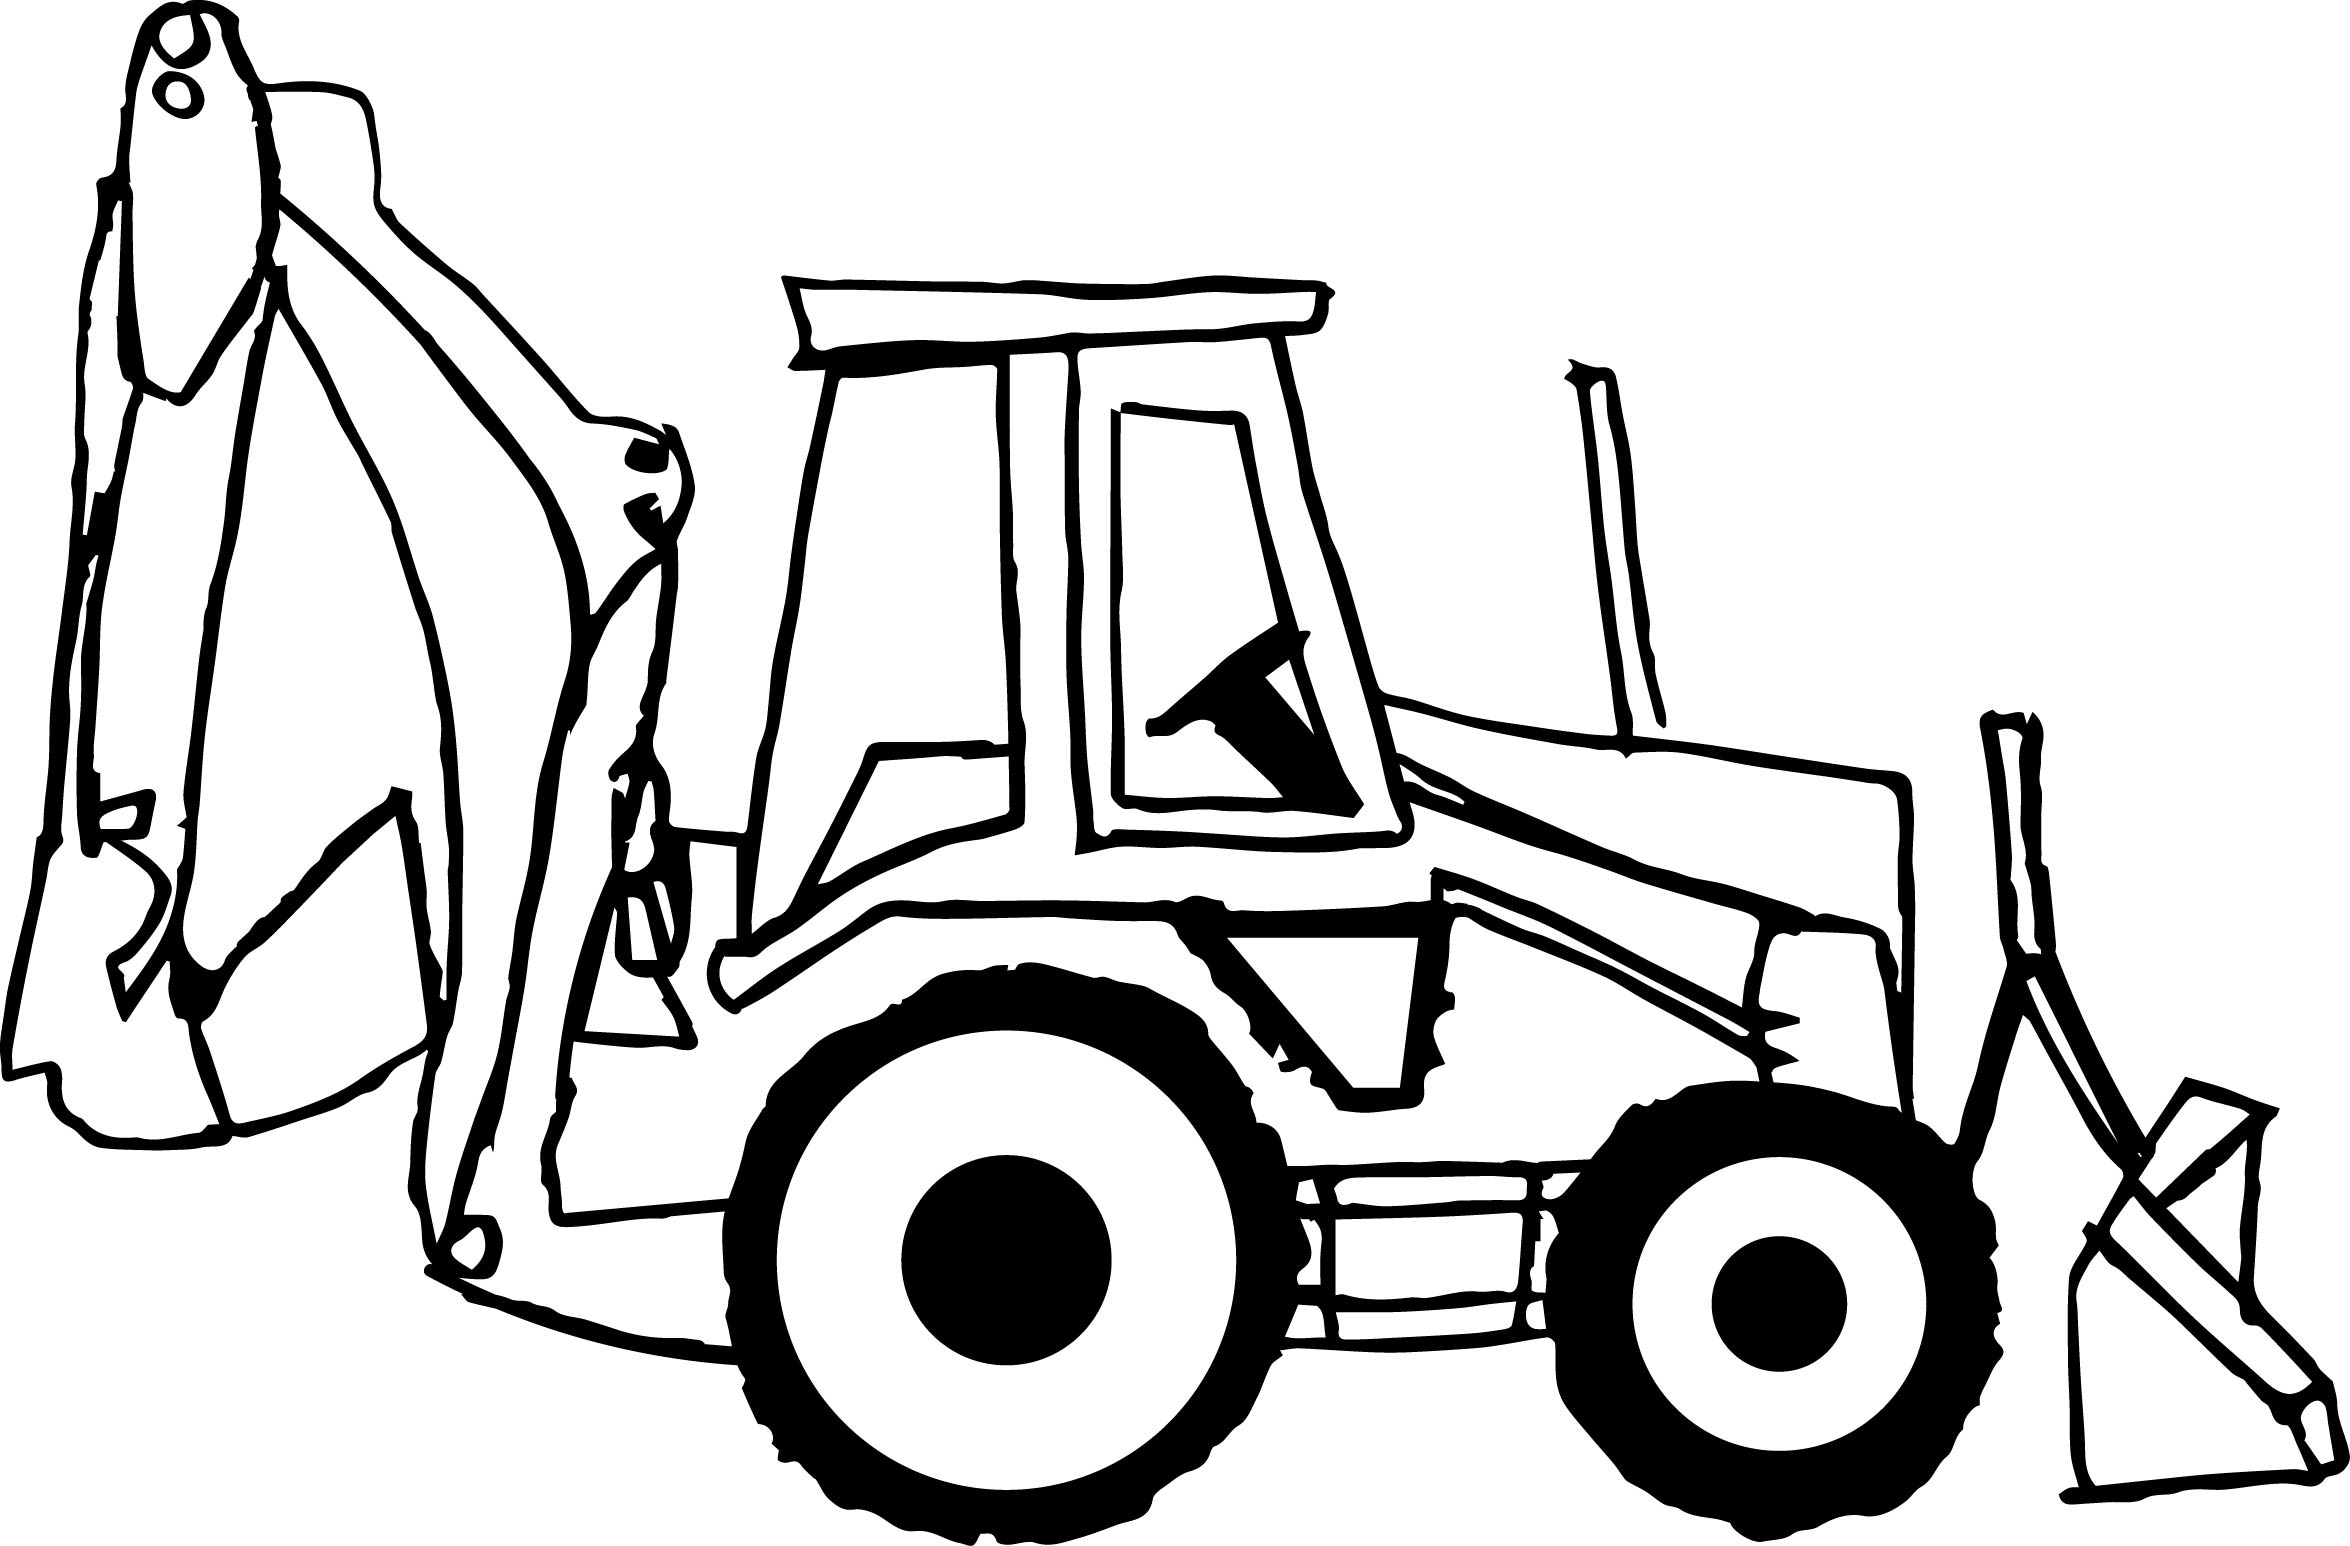 bulldozer pictures to color 30 best images about coloring pages on pinterest pictures color bulldozer to